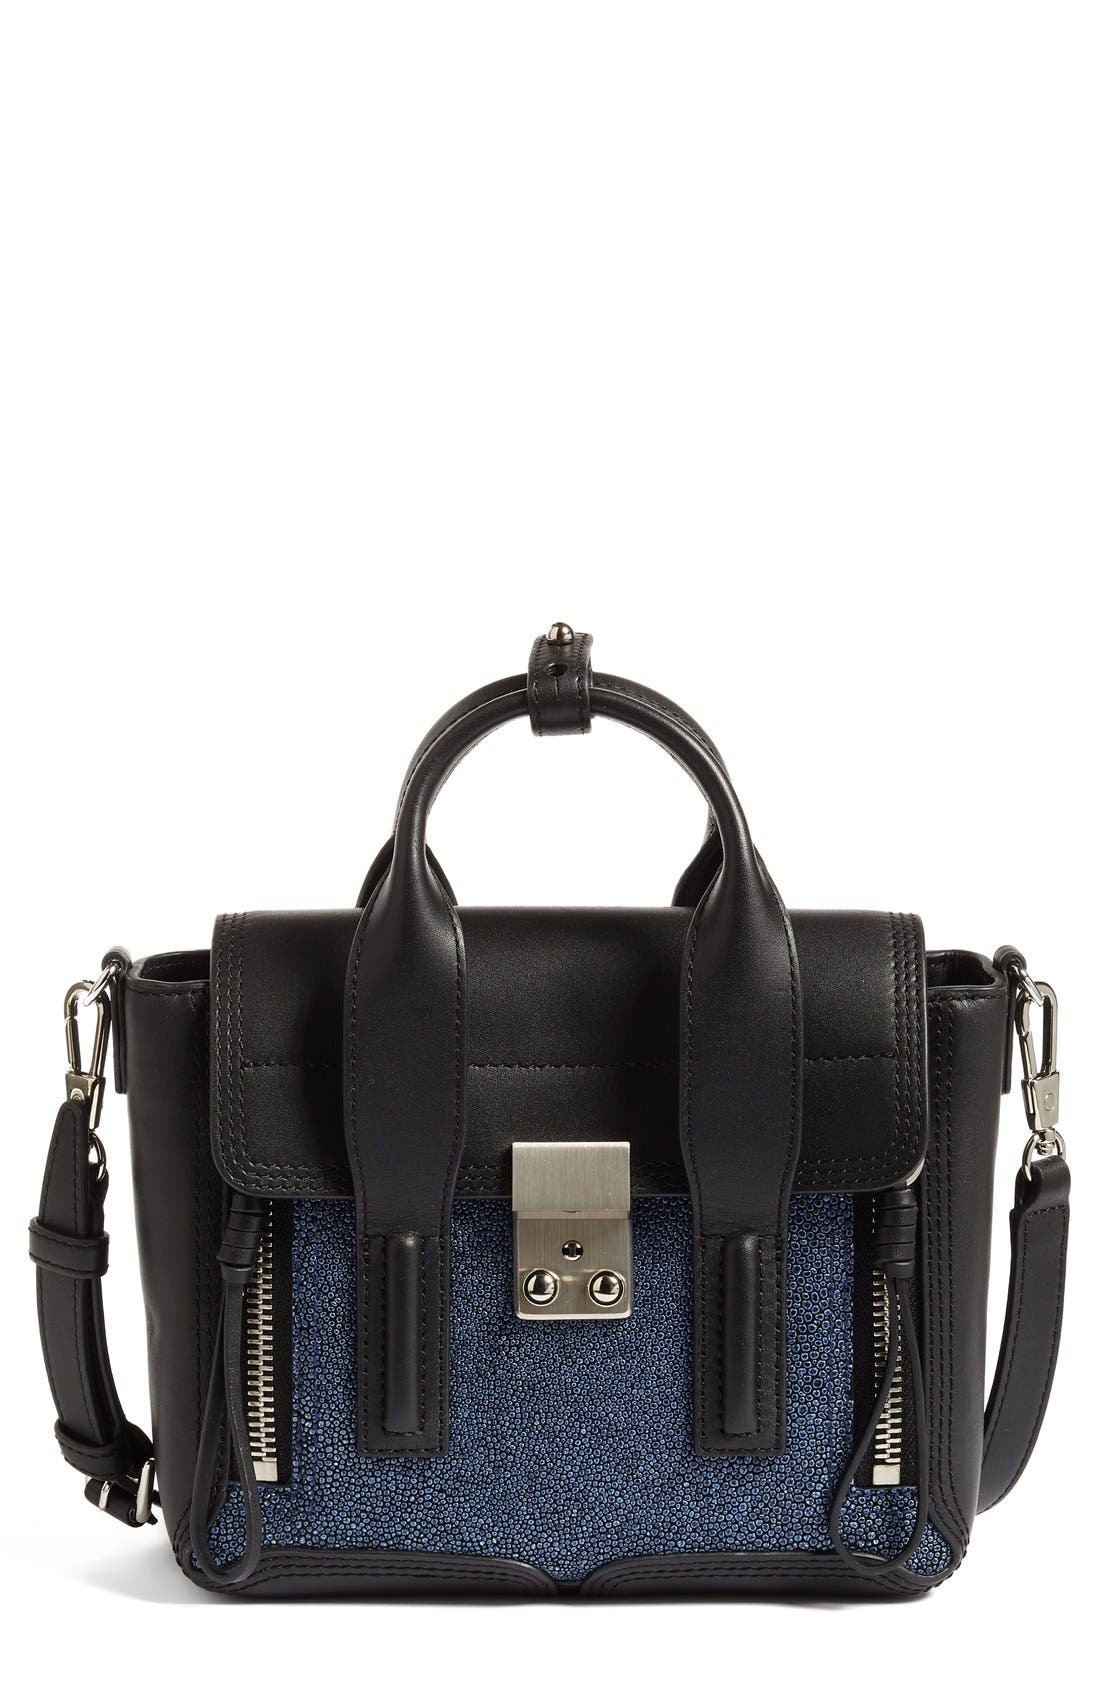 Alternate Image 1 Selected - 3.1 Phillip Lim Mini Pashli Leather Satchel